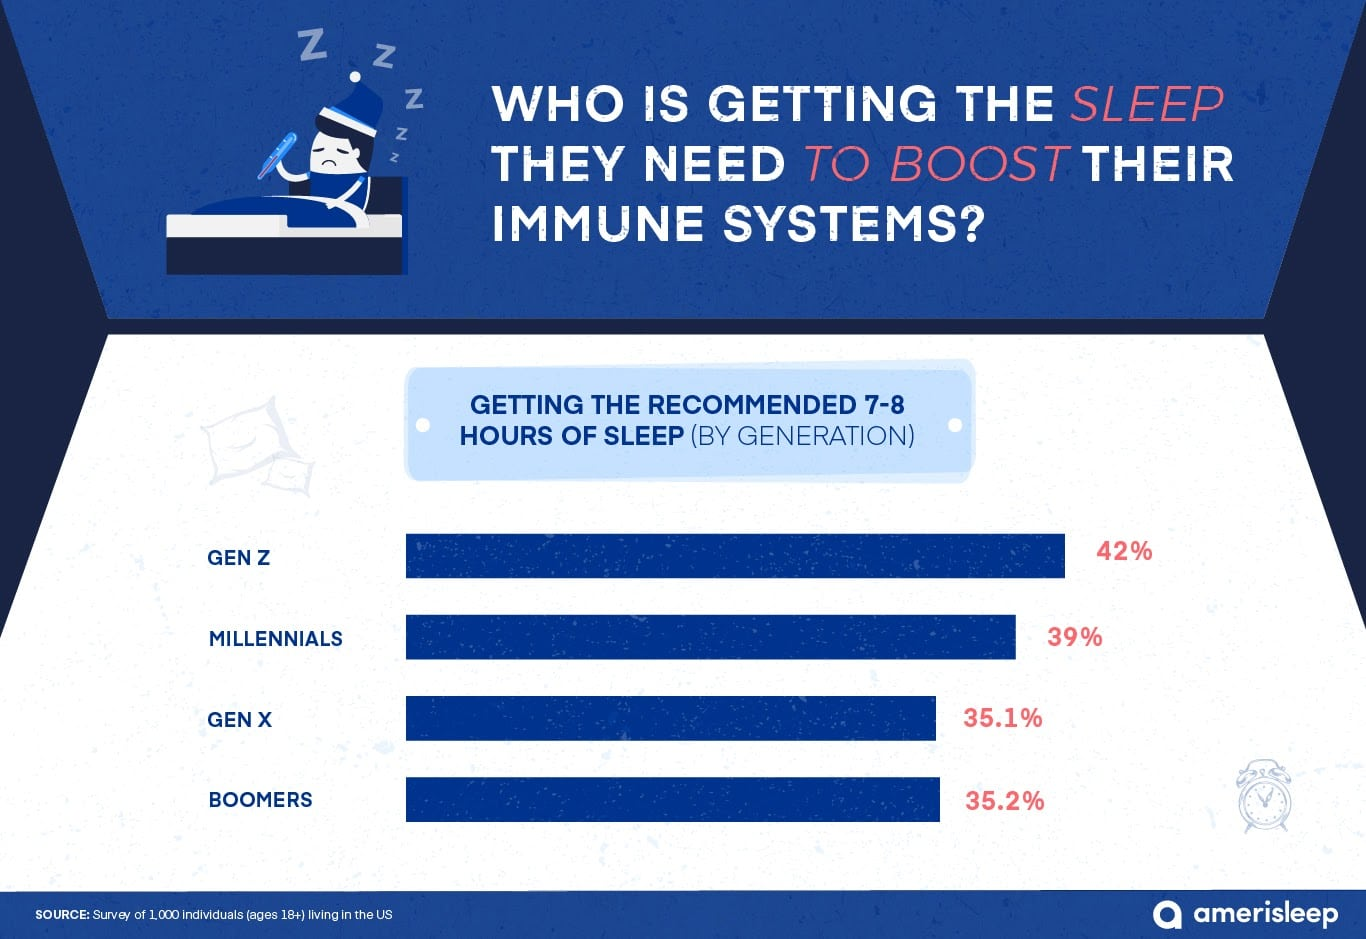 recommended hours of sleep by generation